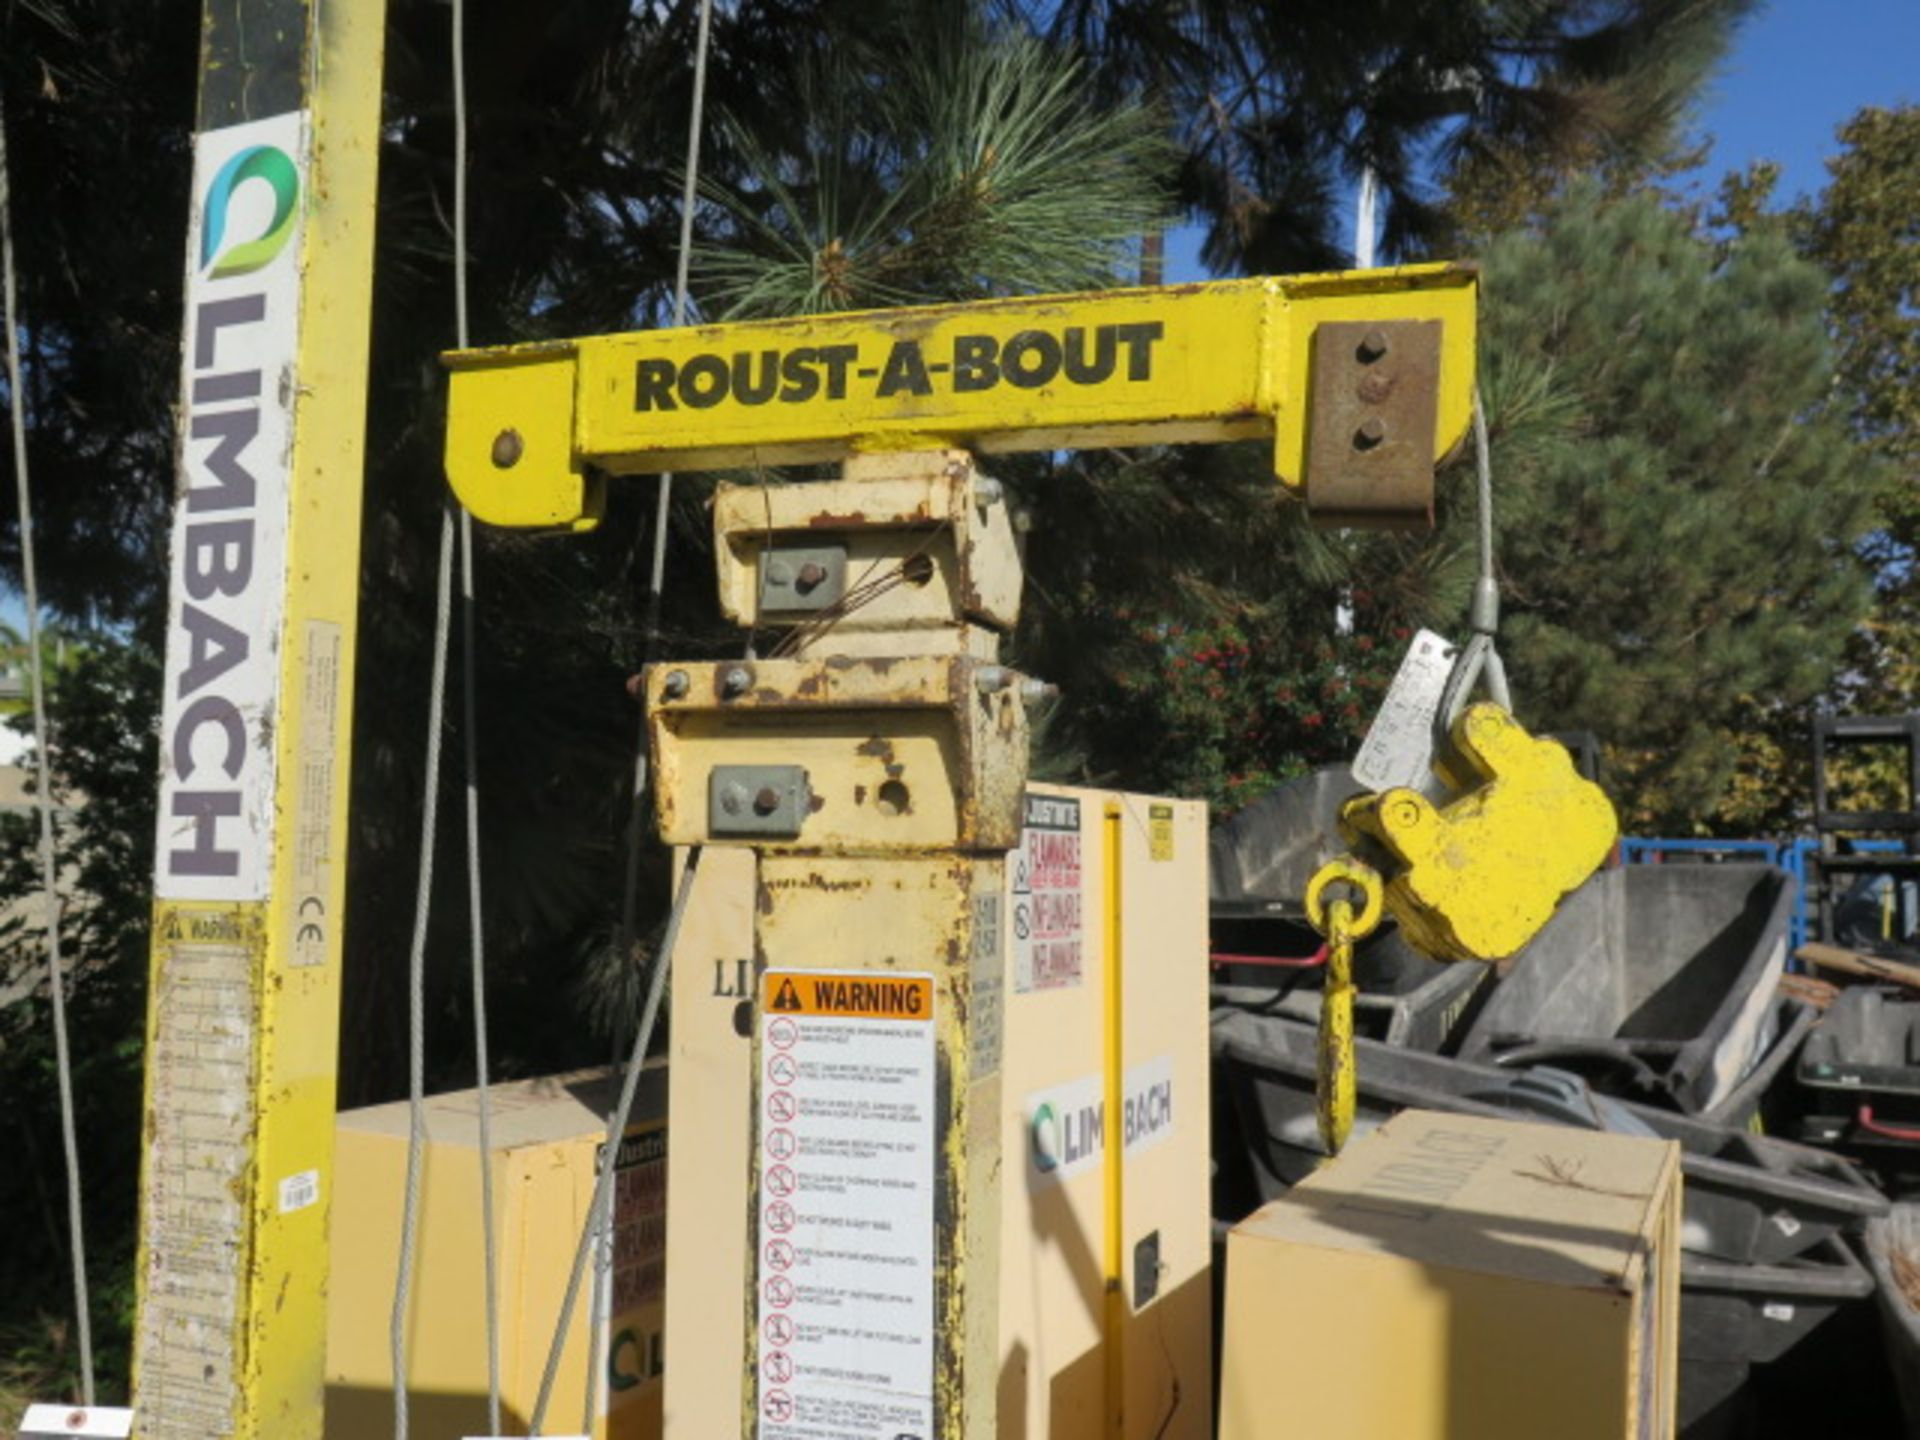 Roust-A-Bout Portable Extendable Material Lift (SOLD AS-IS - NO WARRANTY) - Image 4 of 5